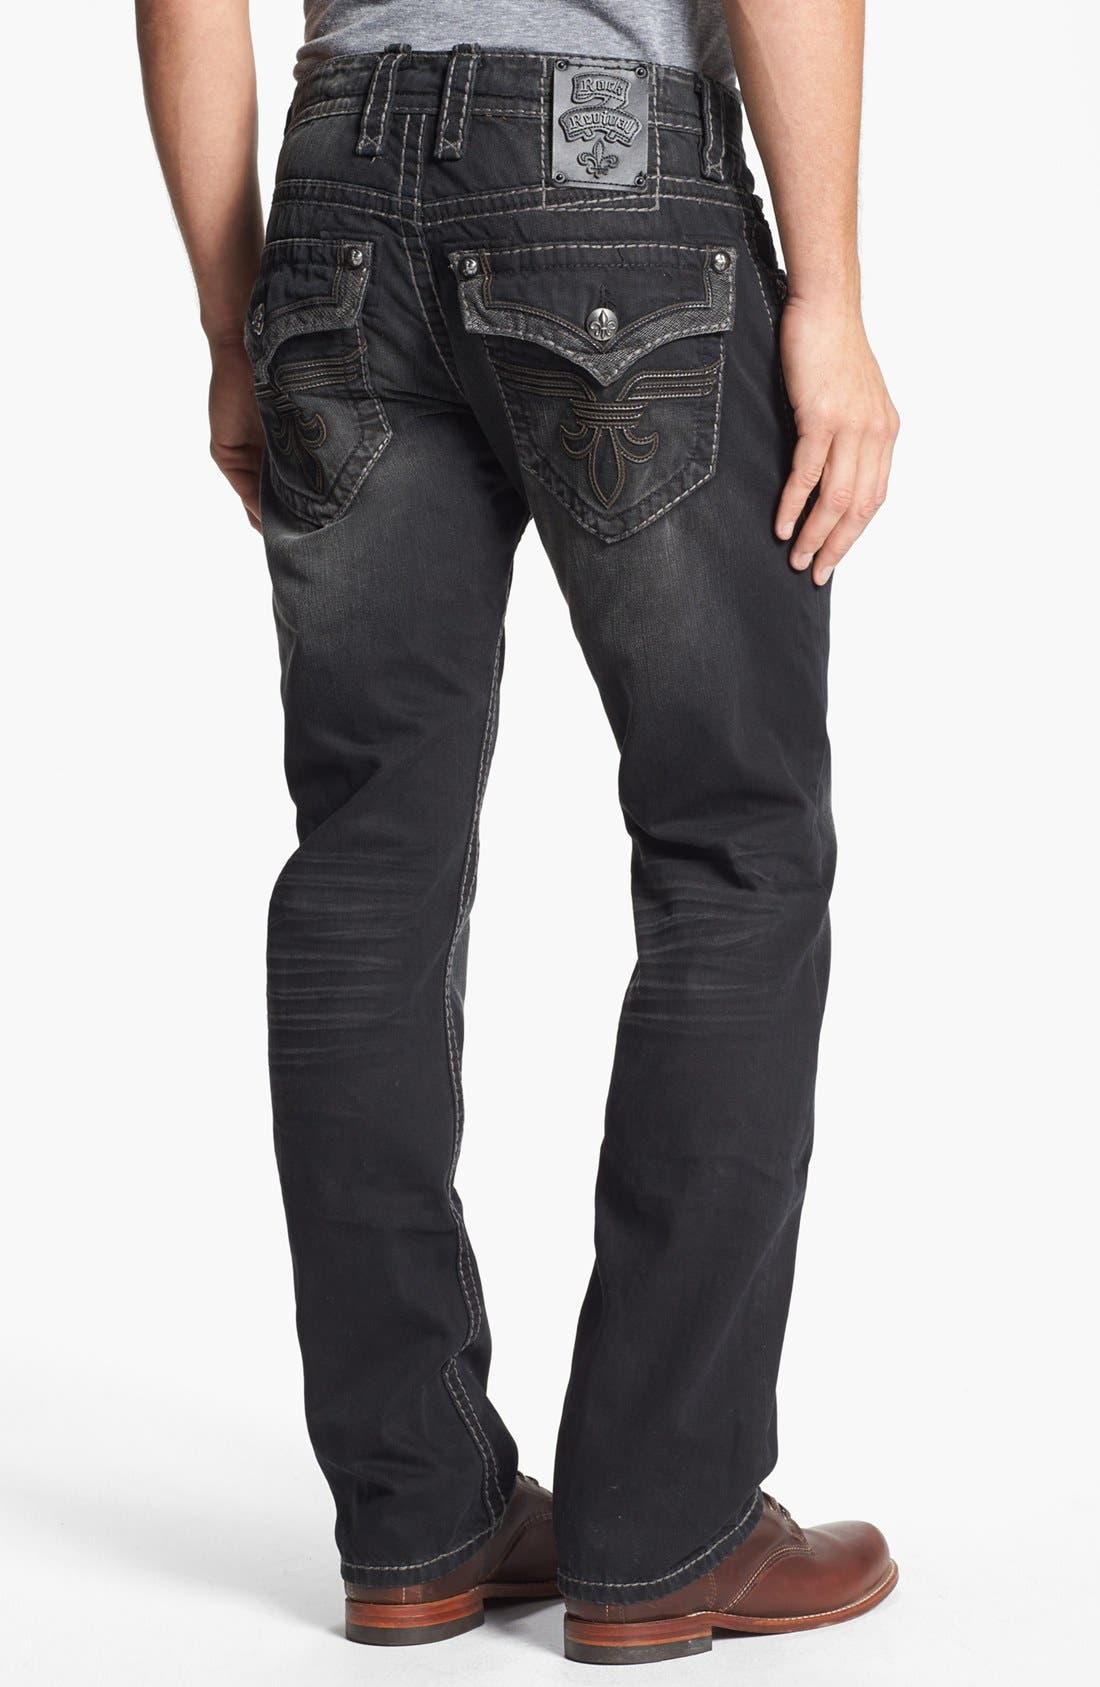 Alternate Image 1 Selected - Rock Revival 'Chopper' Straight Leg Jeans (Black)